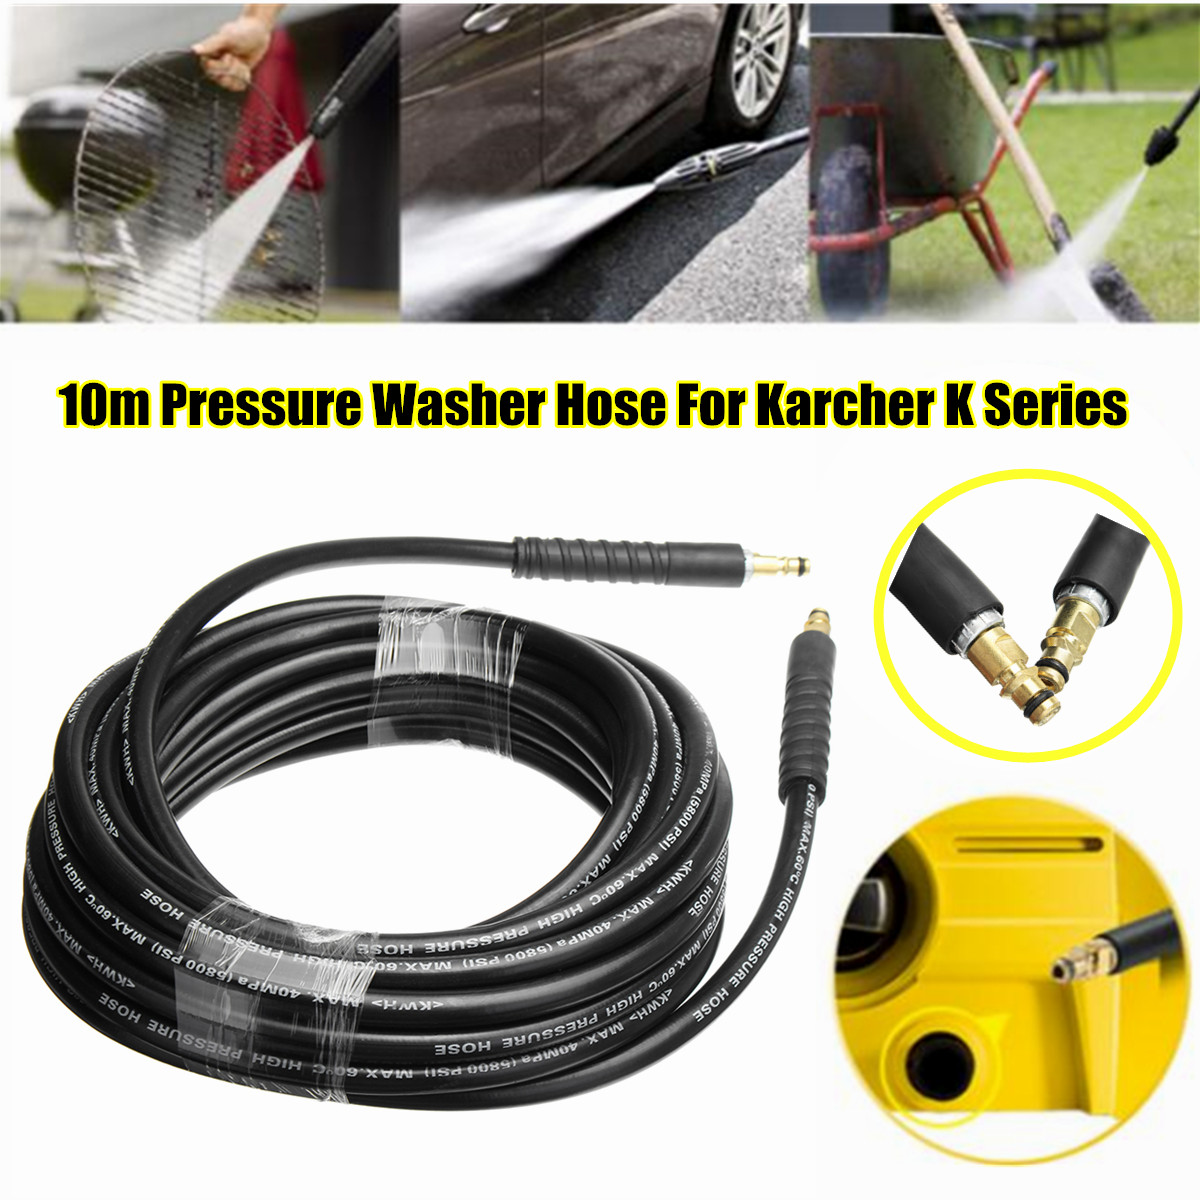 New 10m High Pressure Washer Water Cleaning Hose Pure Copper for K K2 K3 K4 K5 Car Wash